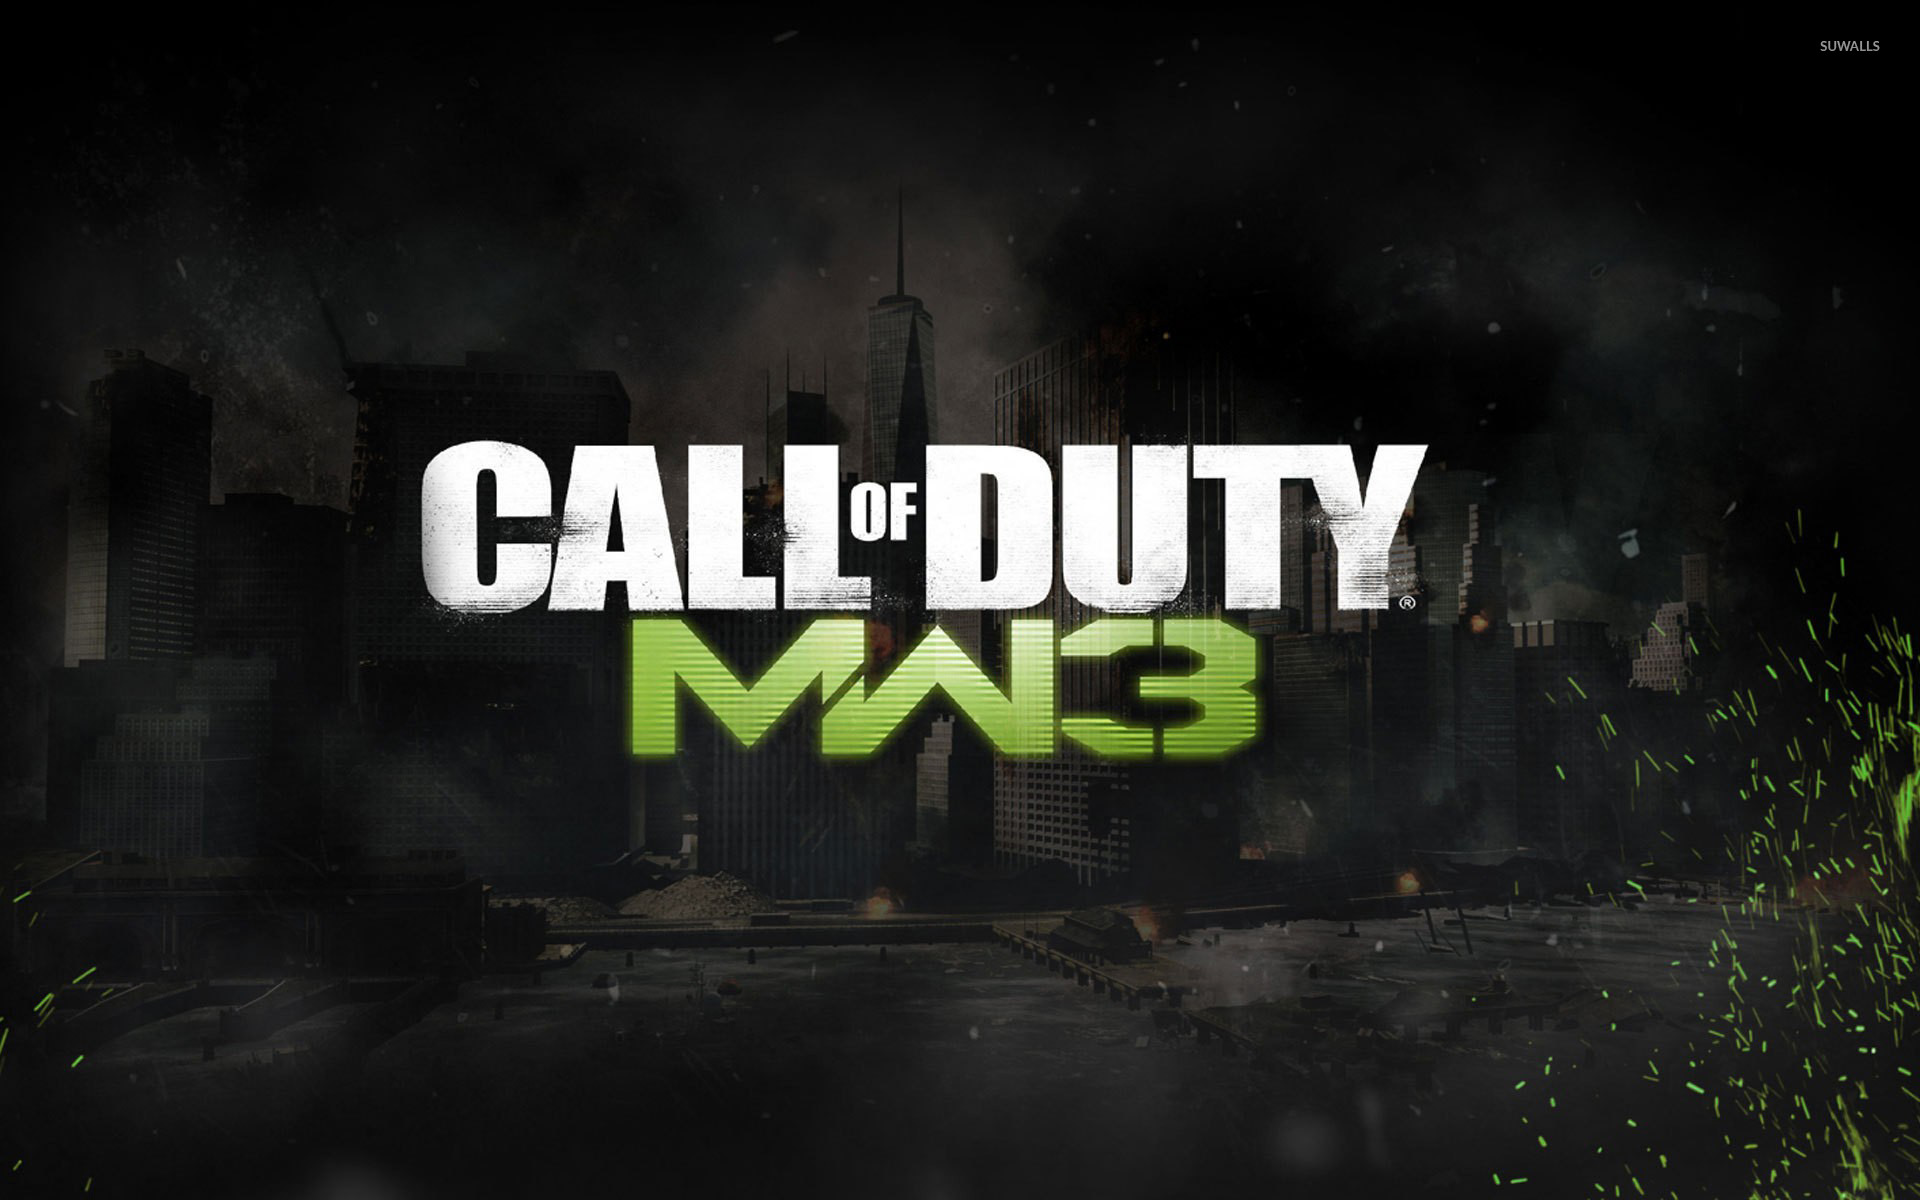 call of duty mw3 download pc